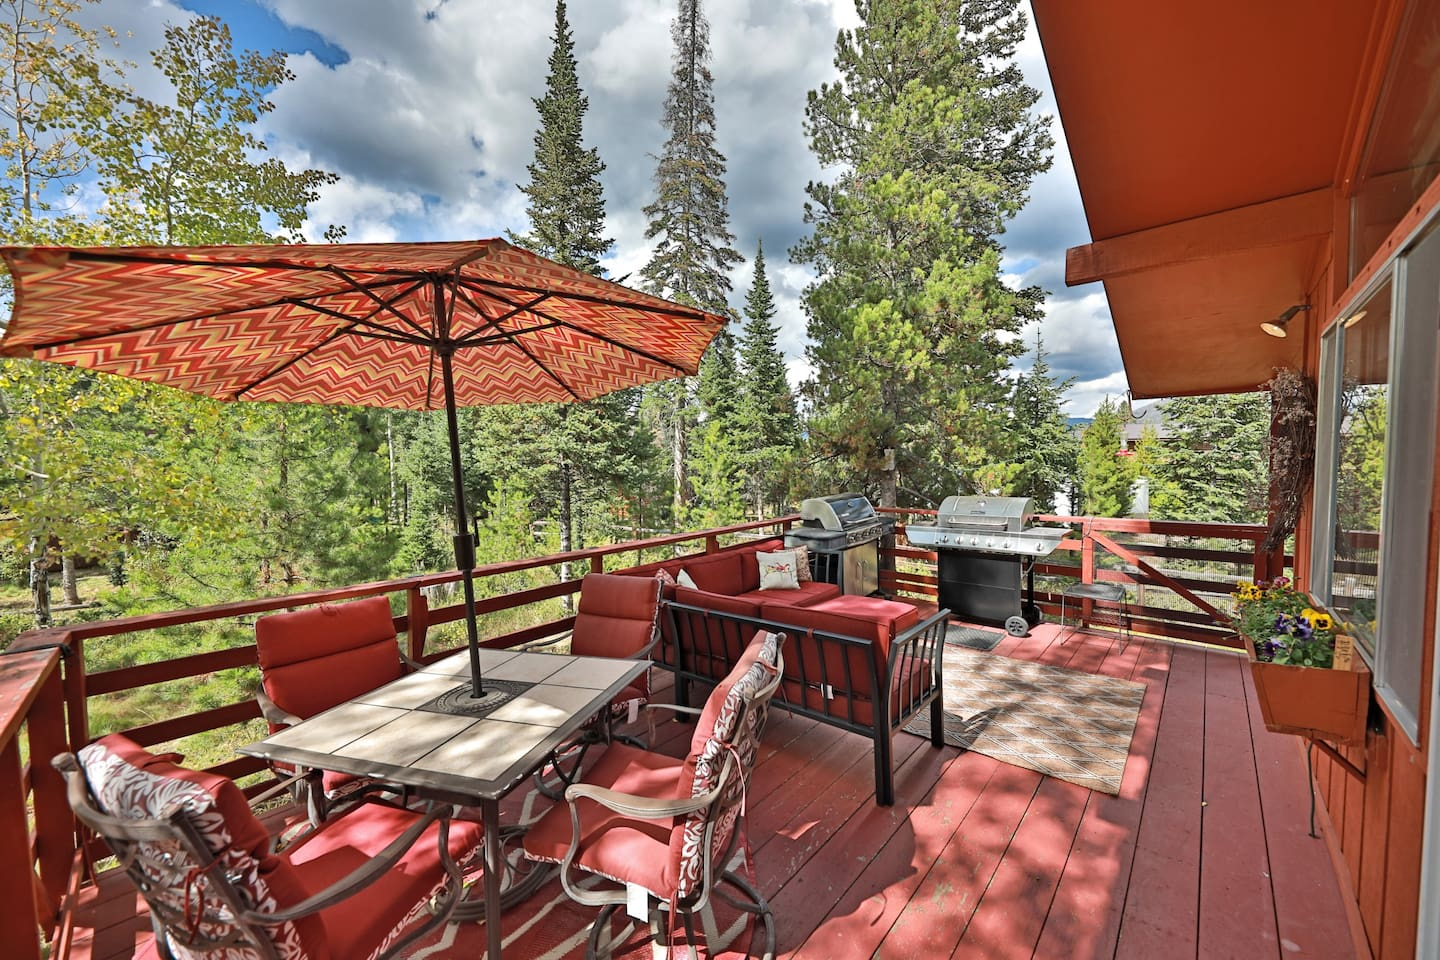 Red Pony - 31 Phlox Lane - a SkyRun Winter Park Property - Relaxing Outdoor Retreat